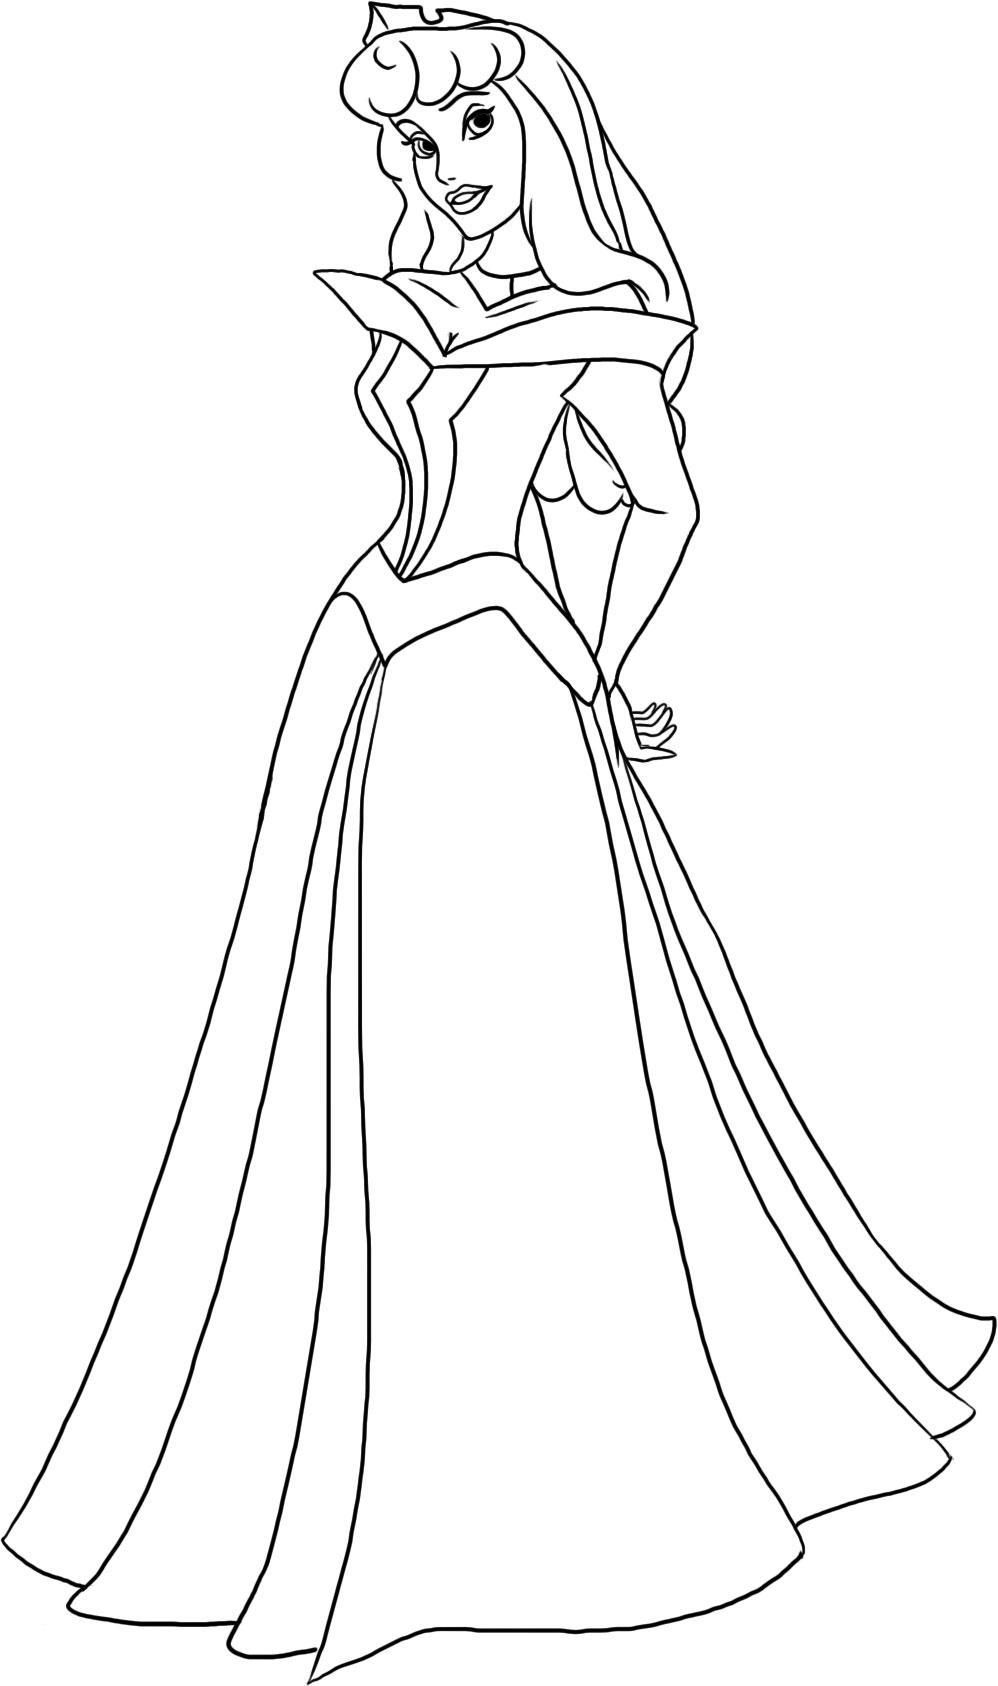 Aurora Disney Princess Coloring Pages Sleeping Beauty Coloring Pages Disney Princess Colors